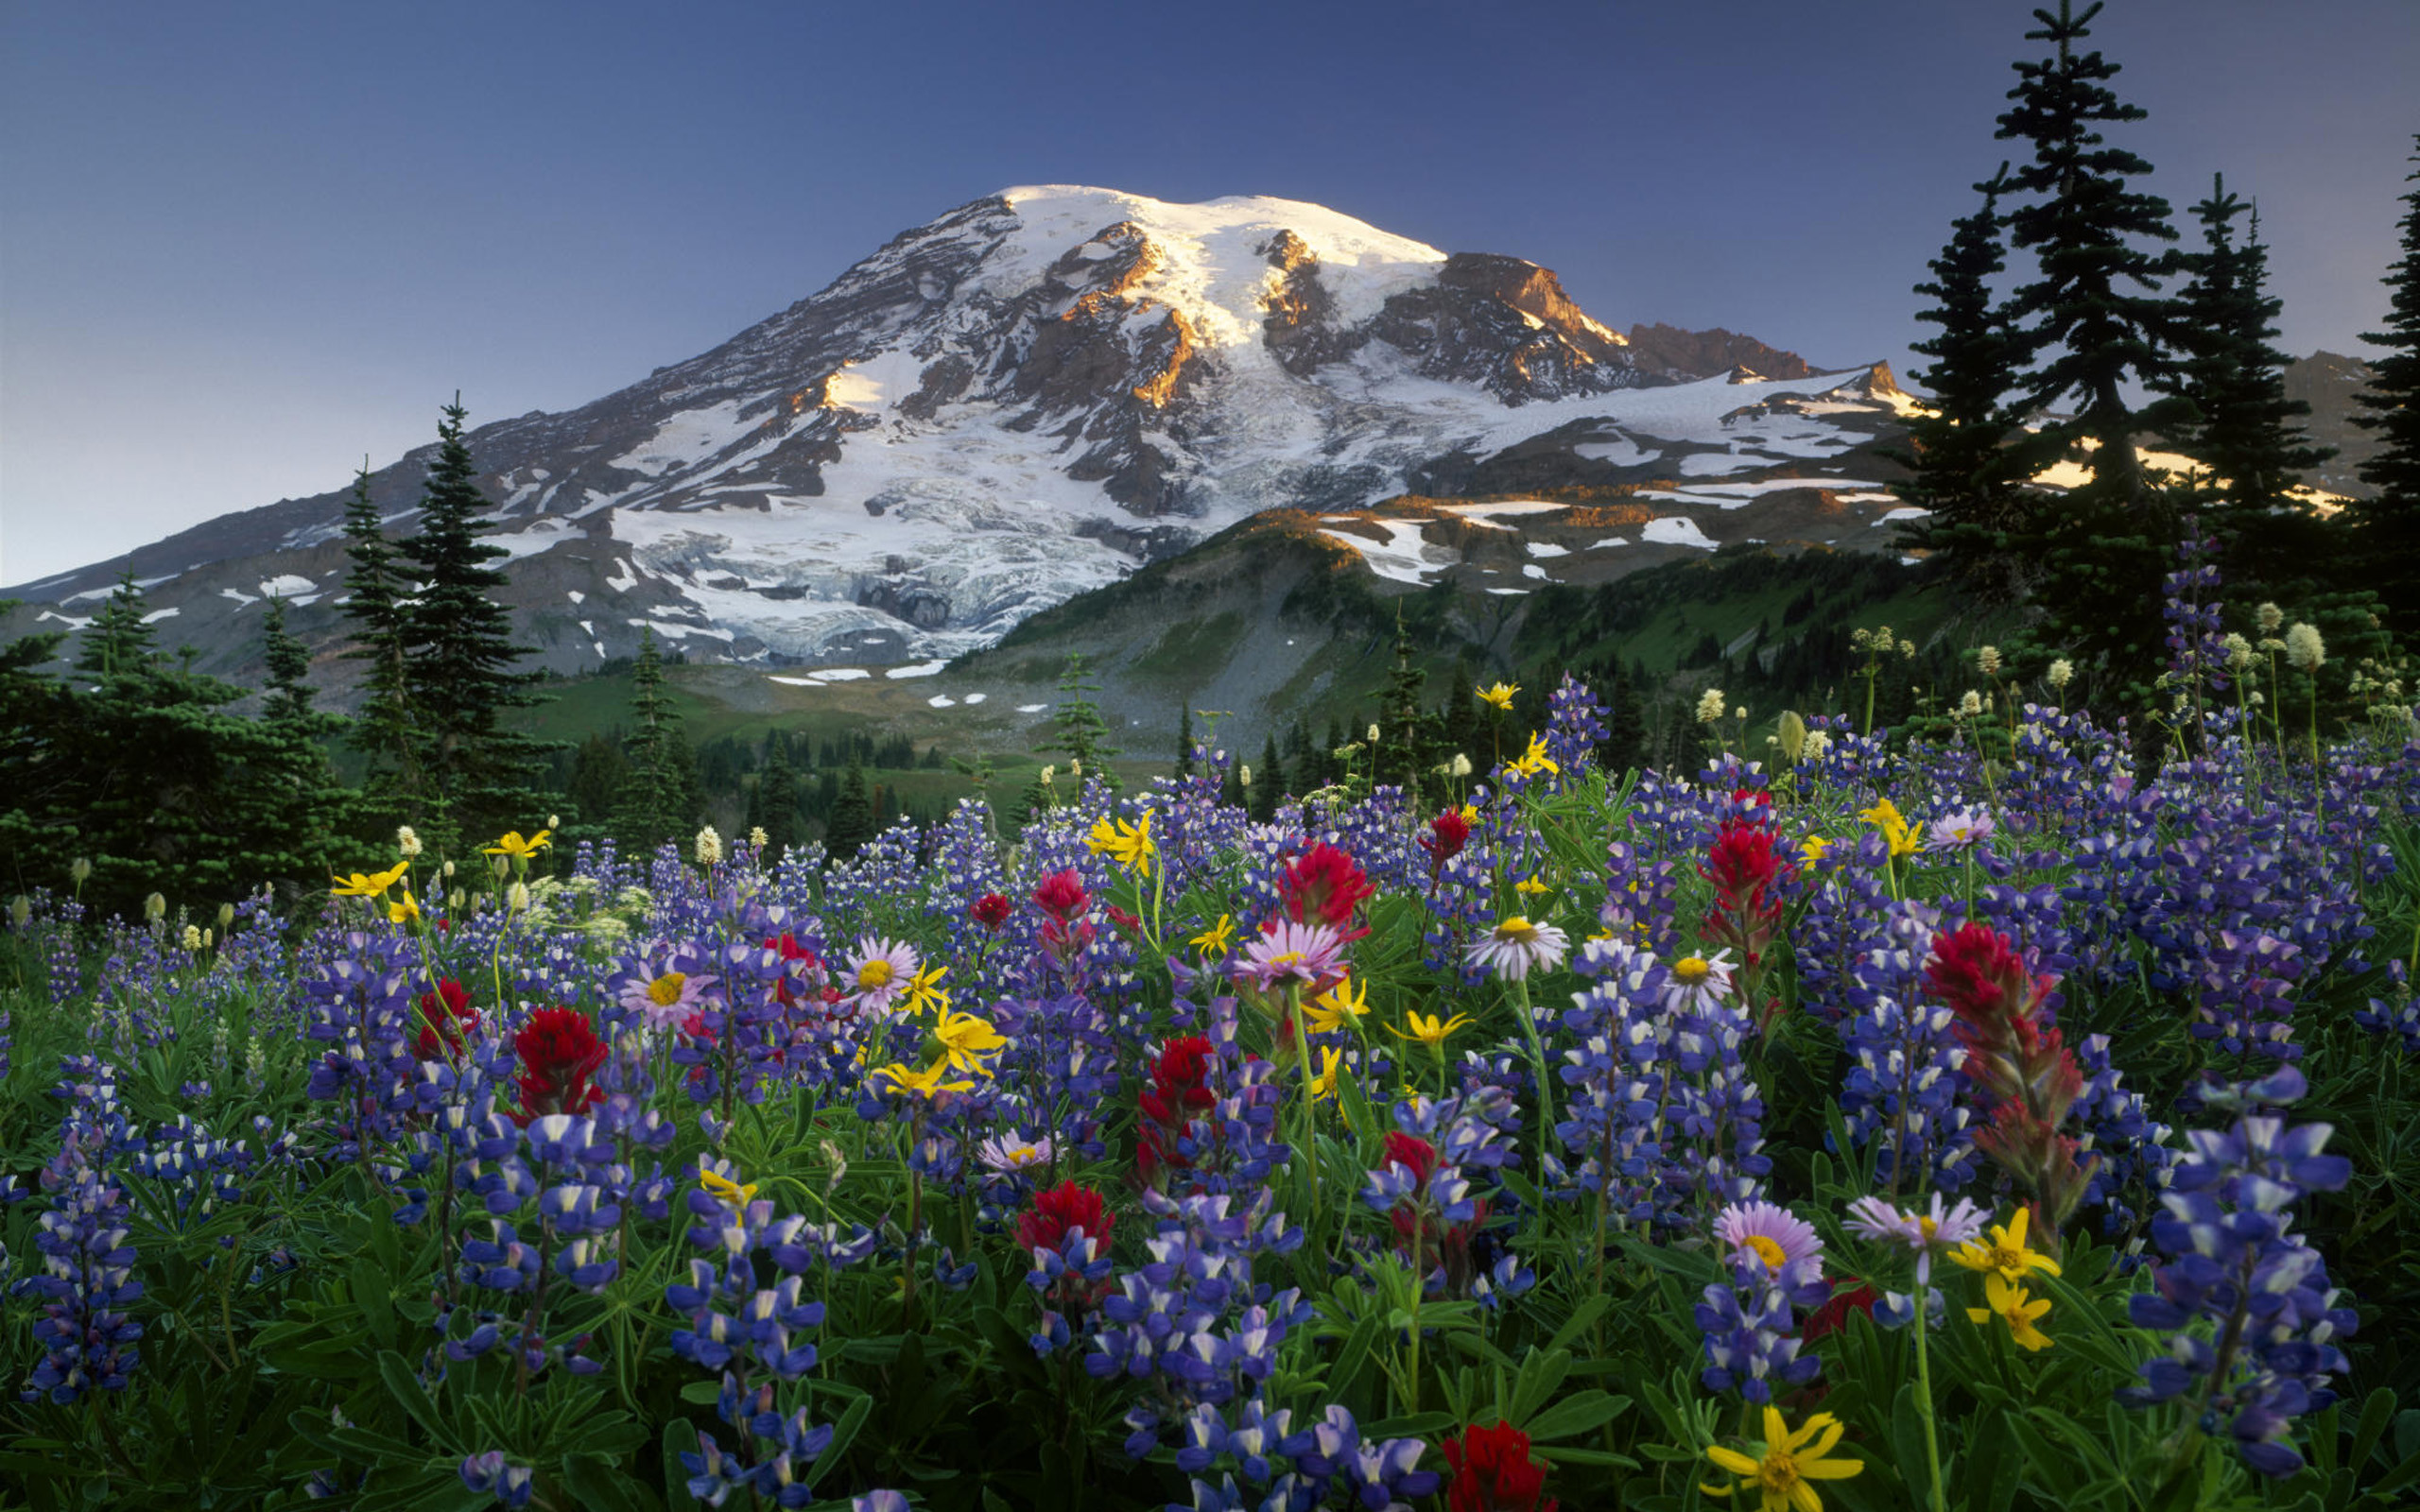 Pacific northwest · Mountains Wallpaper Free Download · Mountains Wallpapers  | Best .